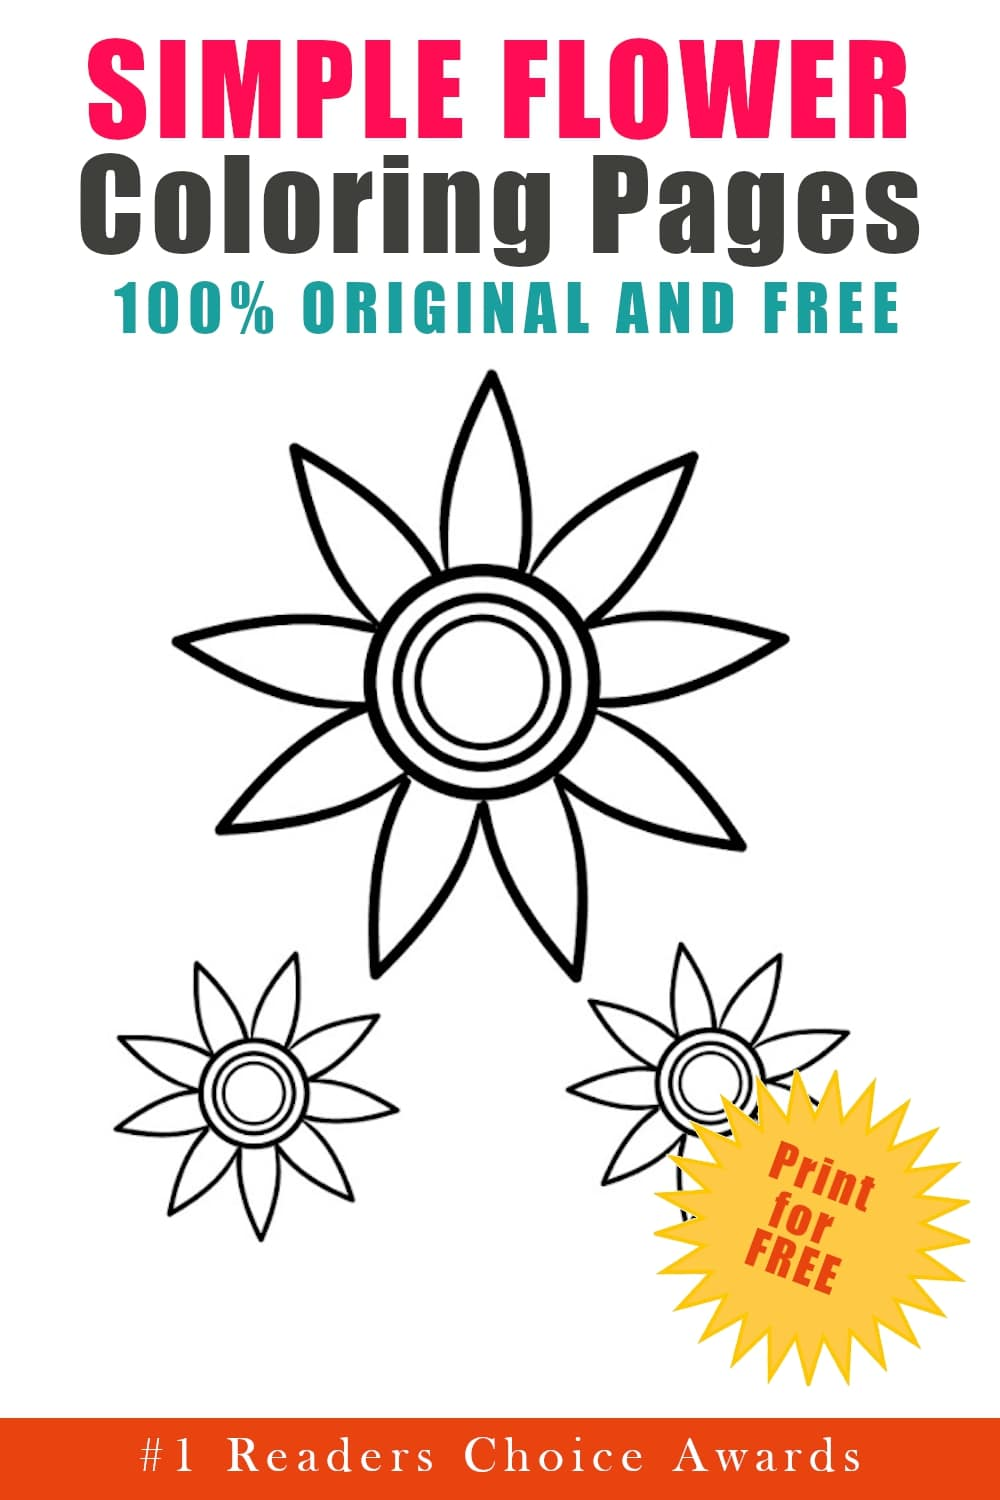 original and free simple flower coloring pages